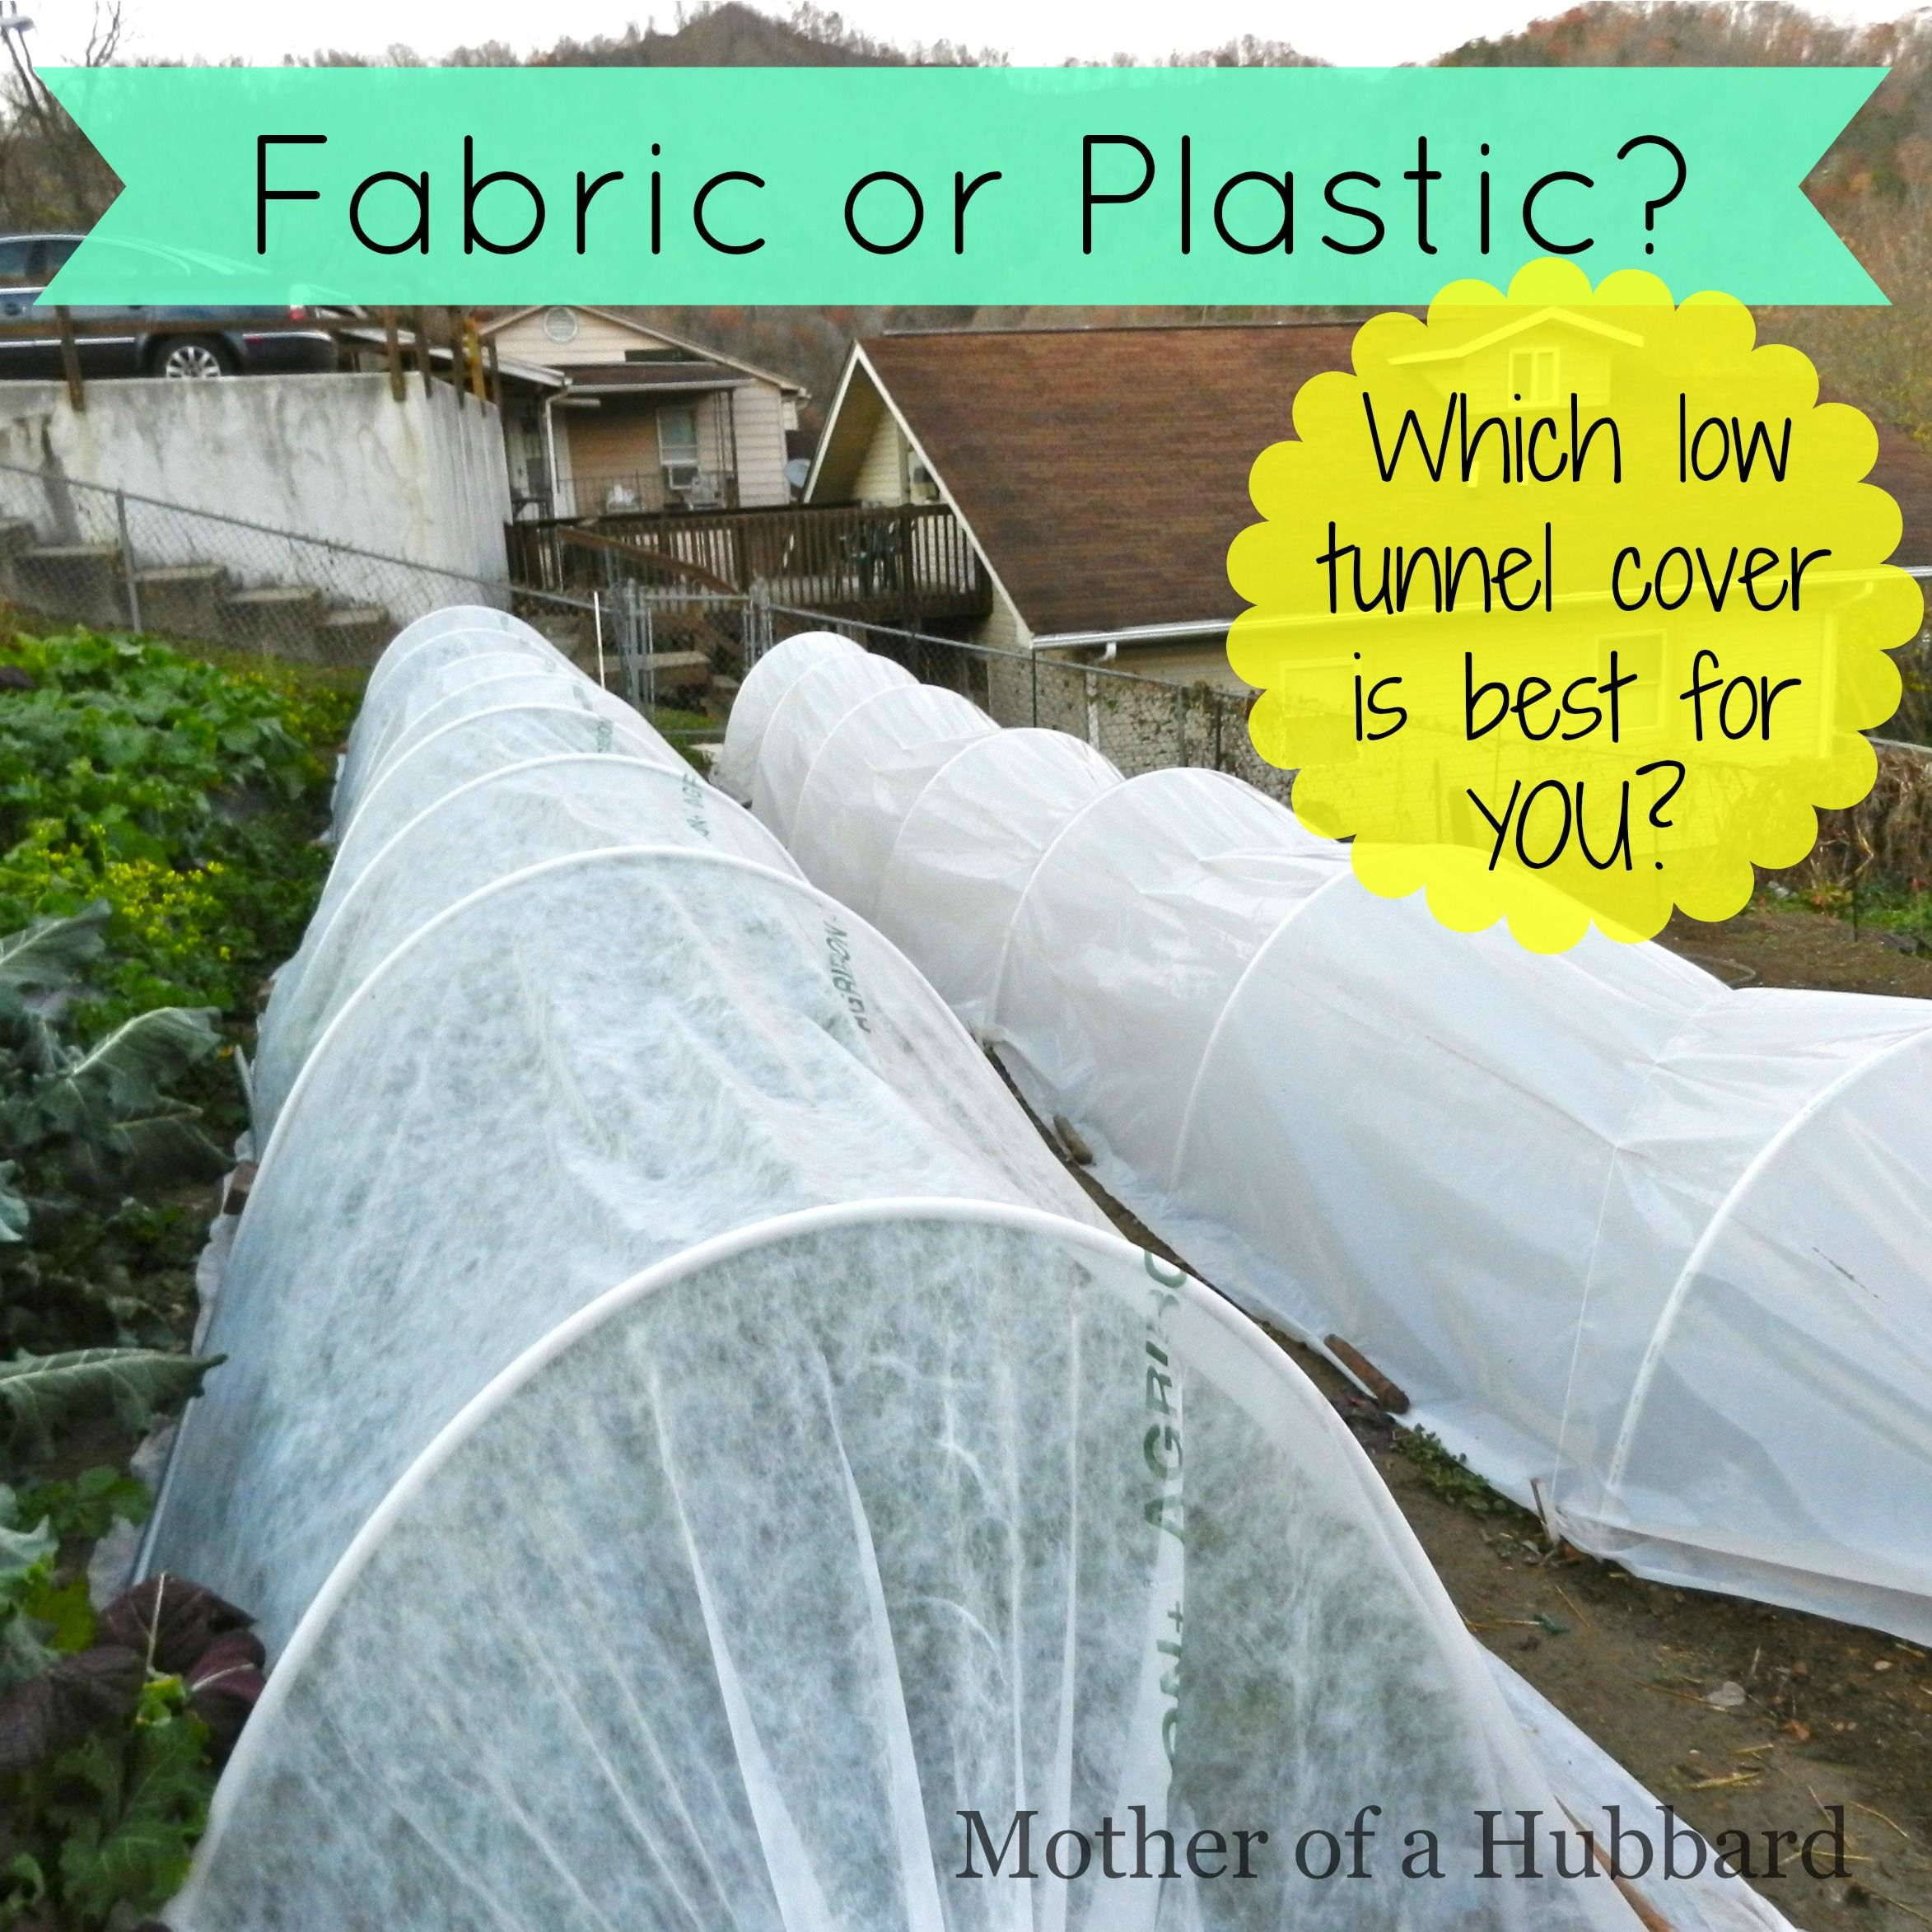 Fabric, or plastic? That's one of the most common